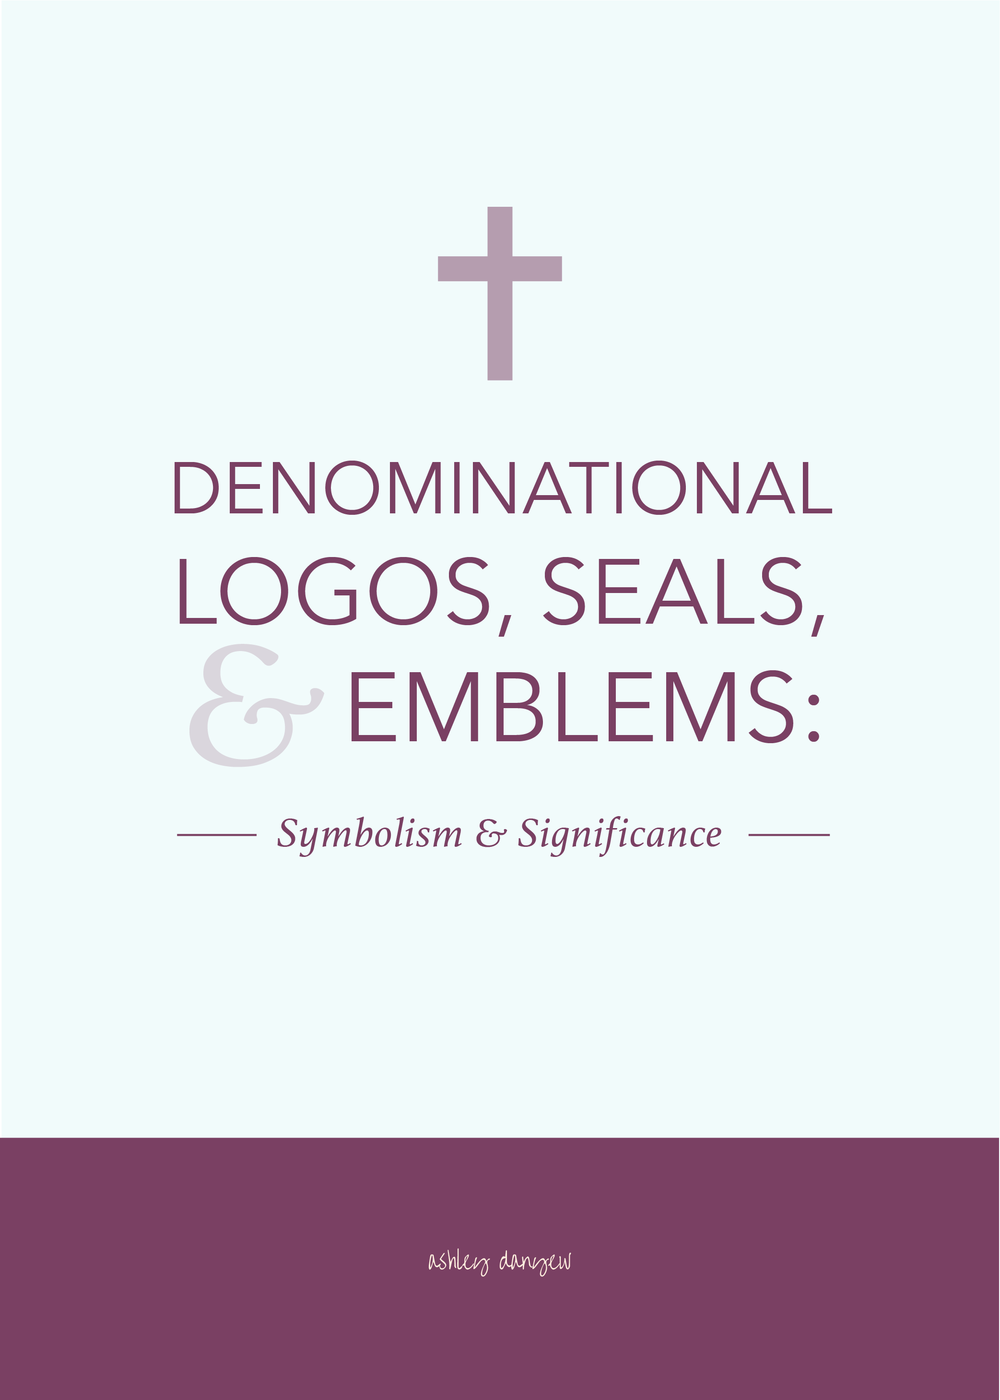 Denominational Logos, Seals, and Emblems-34.png